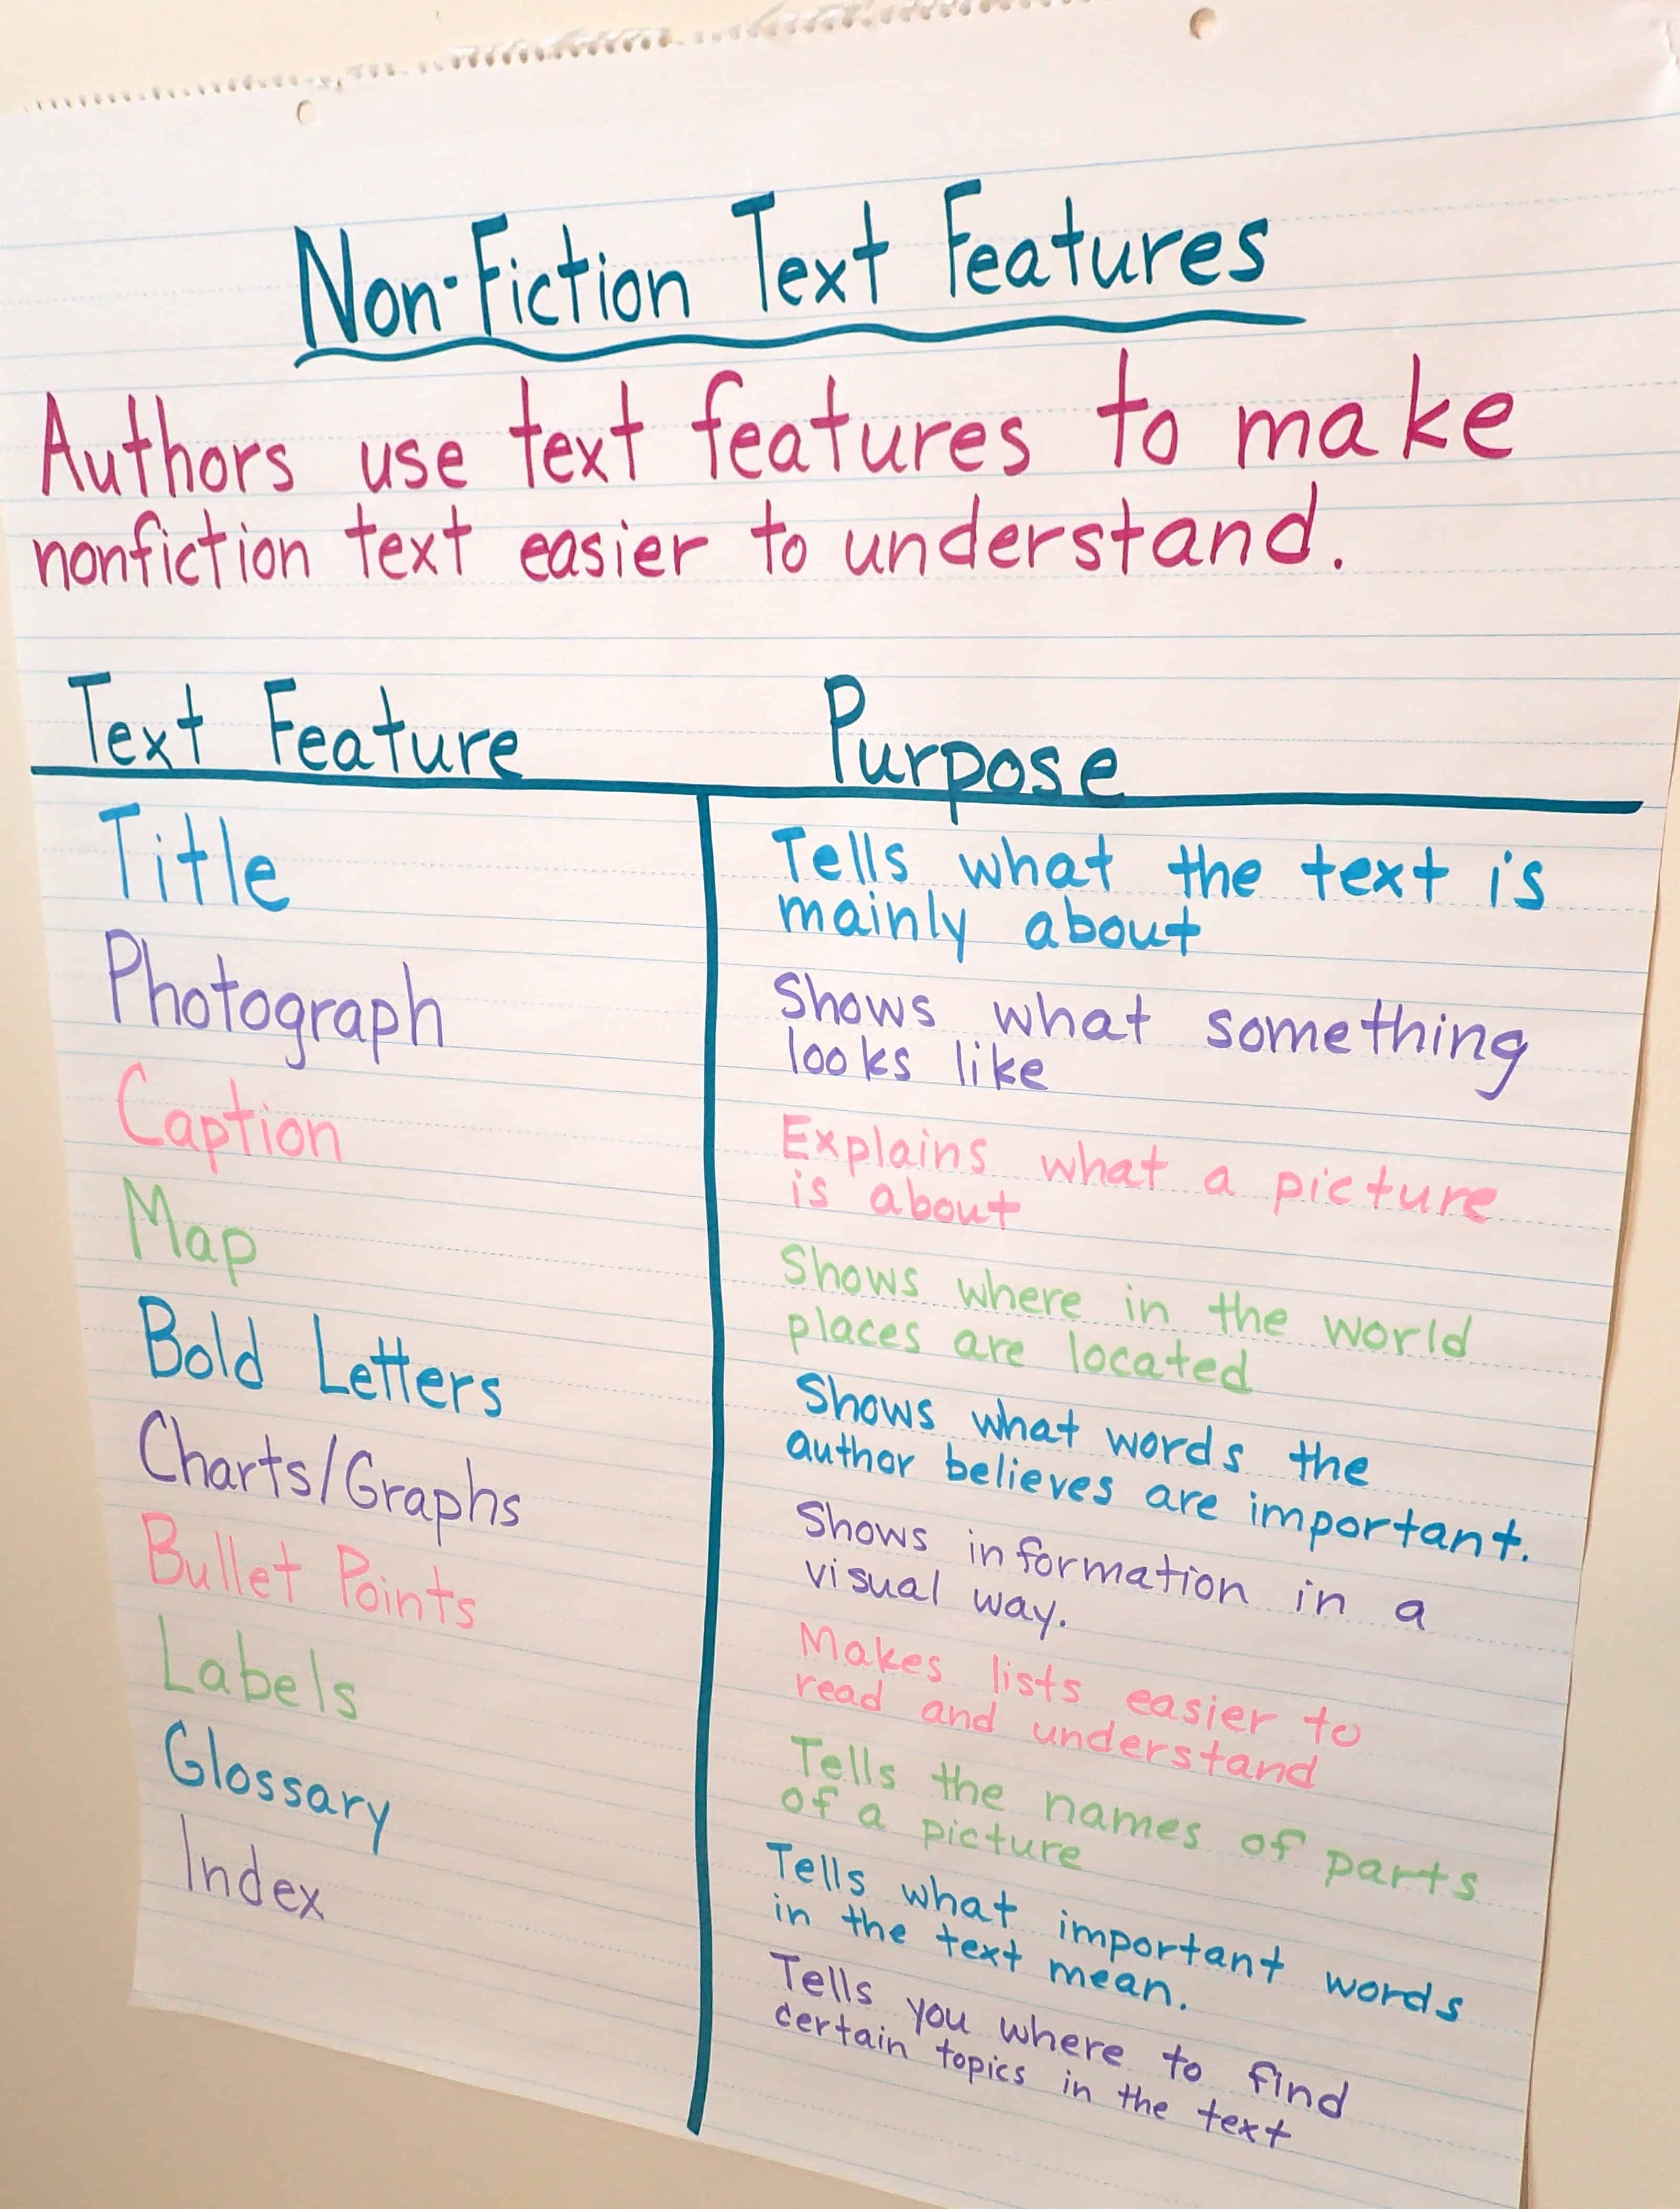 Explain the purpose of different nonfiction text features to 3rd, 4th, and 5th grade students